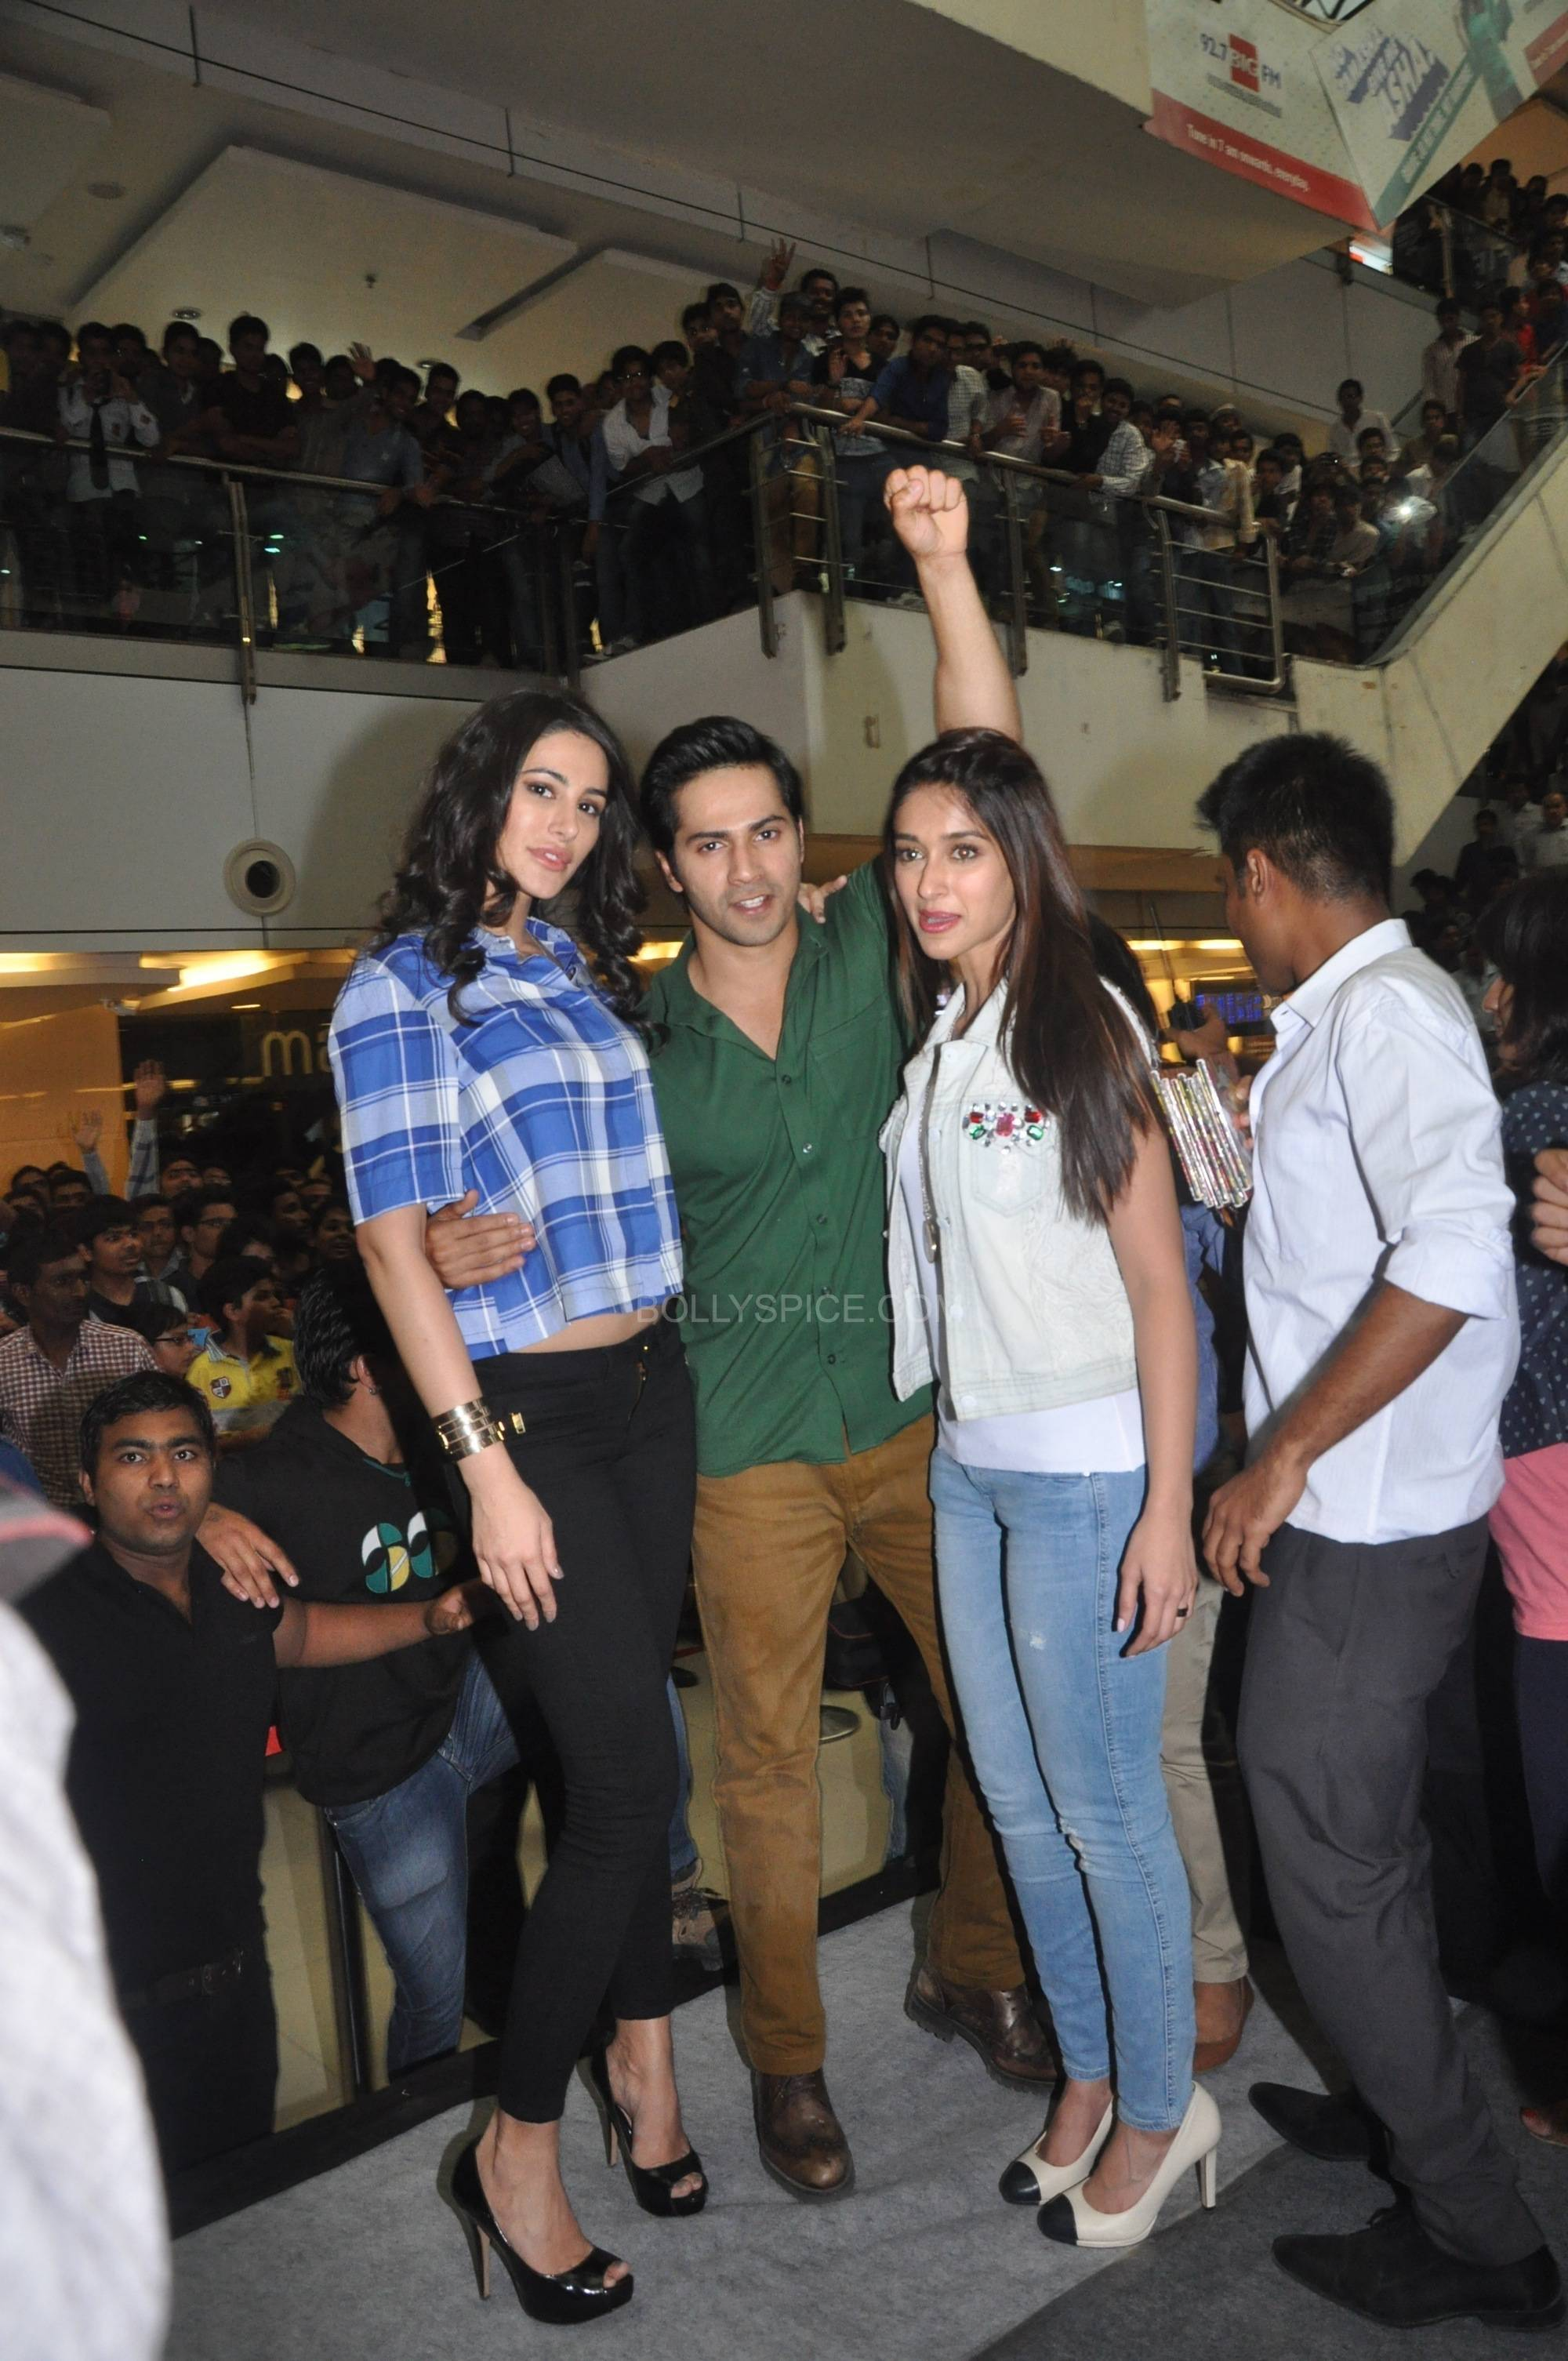 Nargis Fakri Varun Dhawan and Ileana Dcruz at C21 Mall in Indore Varun Dhawan, Ileana D'cruz and Nargis Fakri promote Main Tera Hero in Indore!